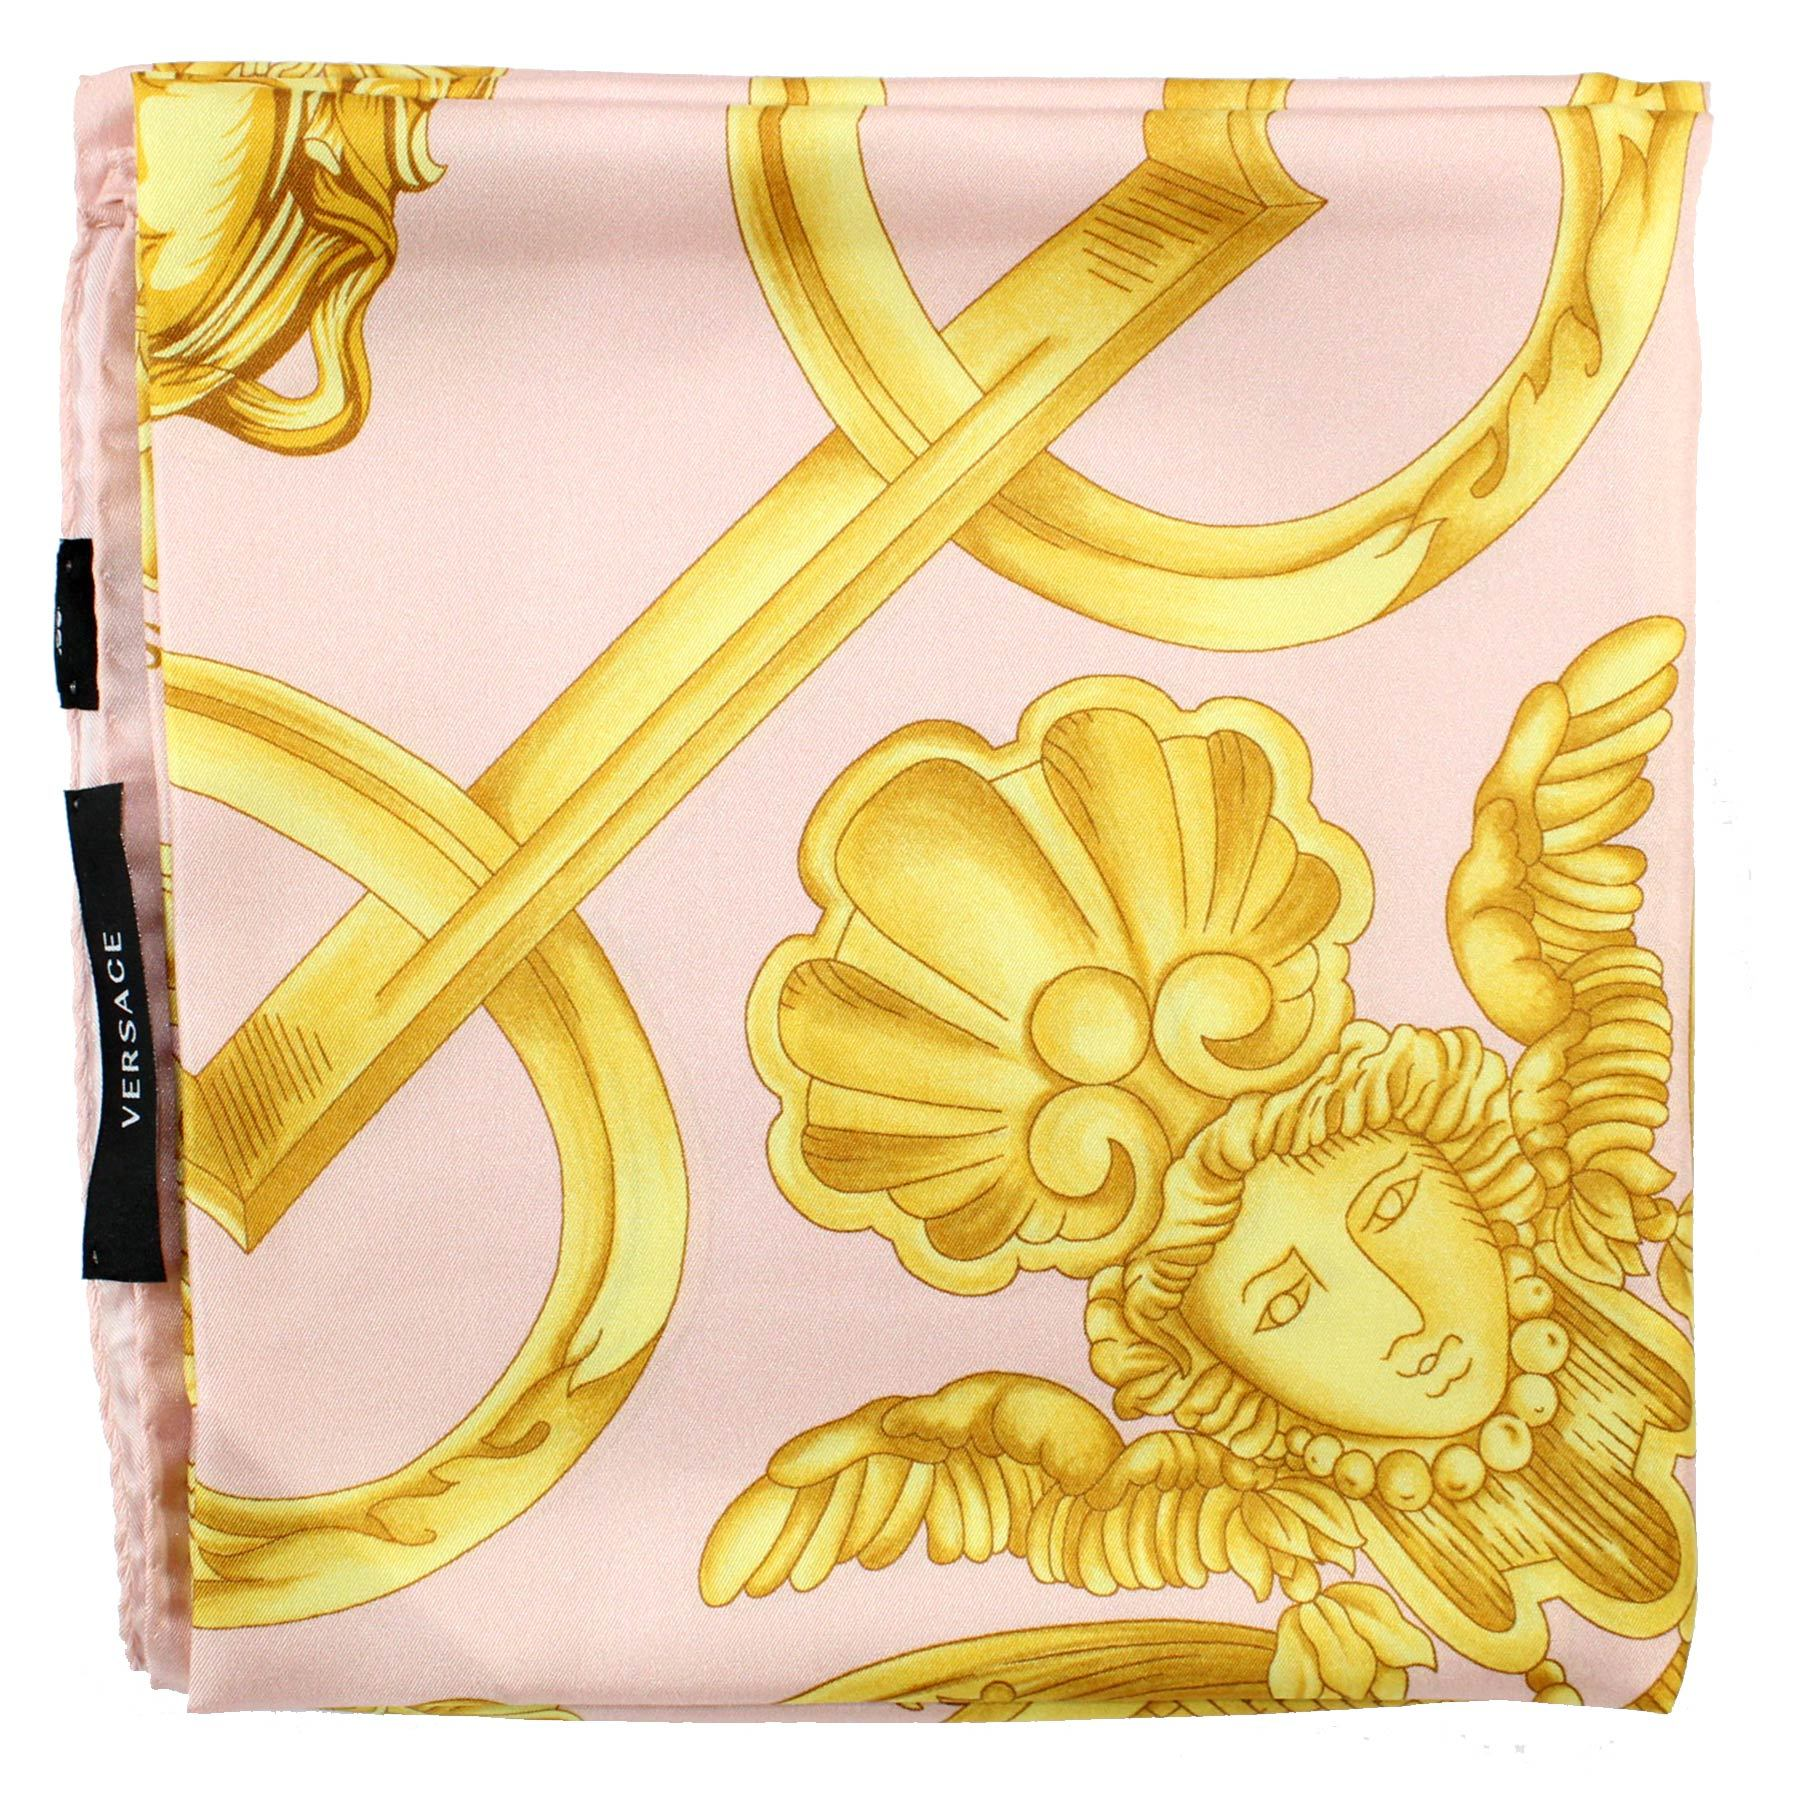 Versace Scarf Pink Gold Baroque Twill Silk Square Scarf